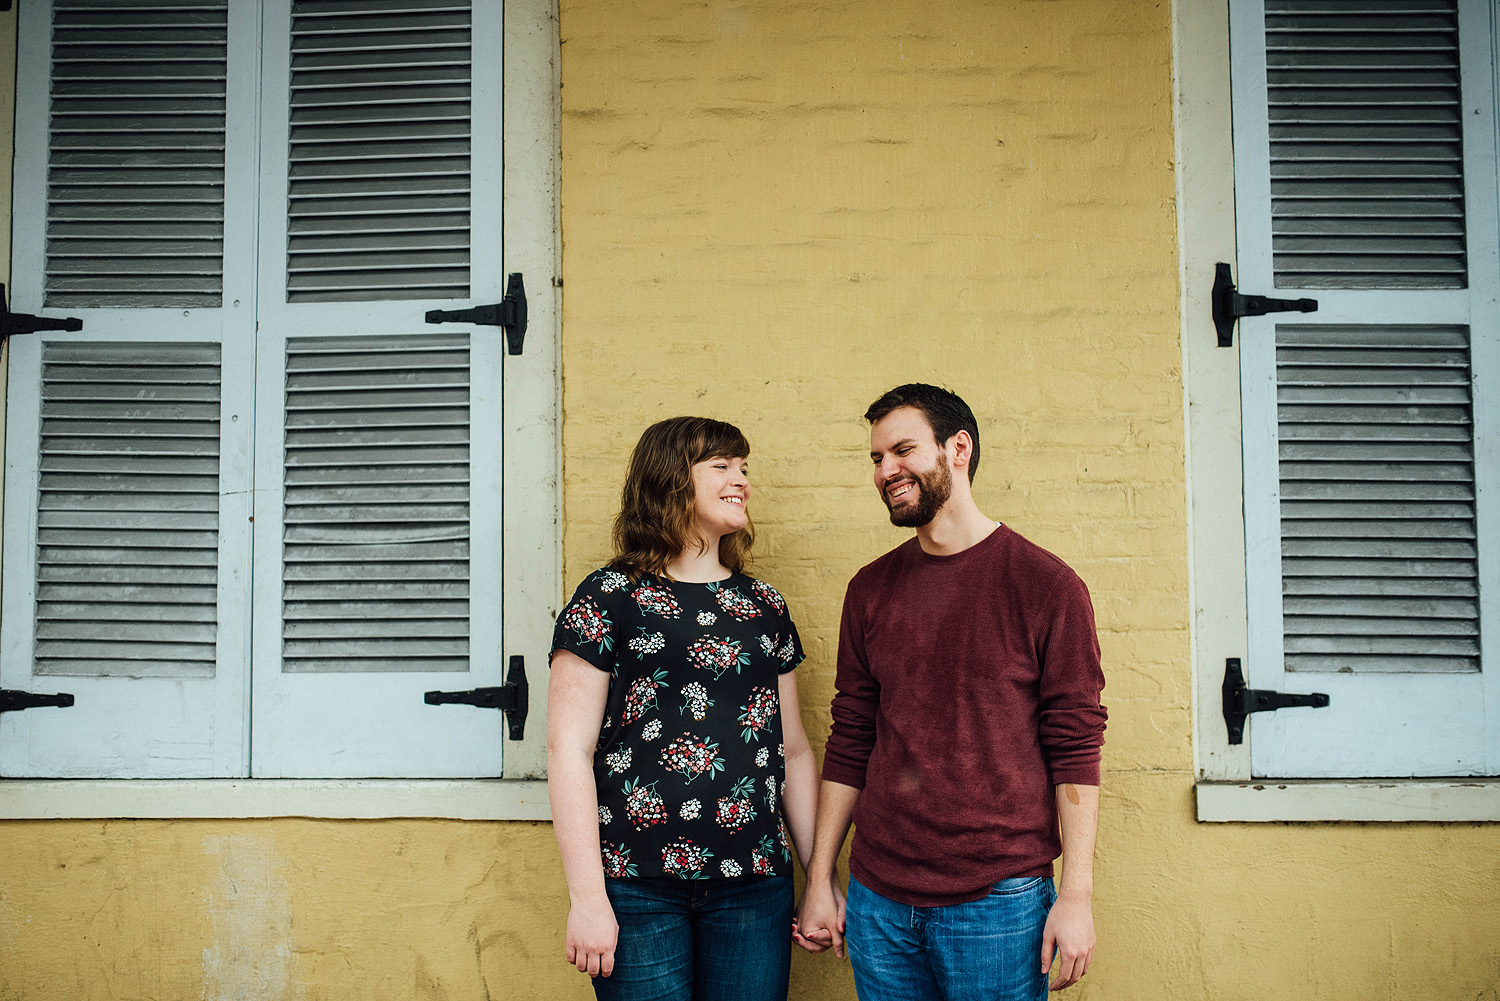 Max + Margaret-Rainy-New-Orleans-Engagement-Photos-Gabby-Chapin_PRINT_0051.jpg